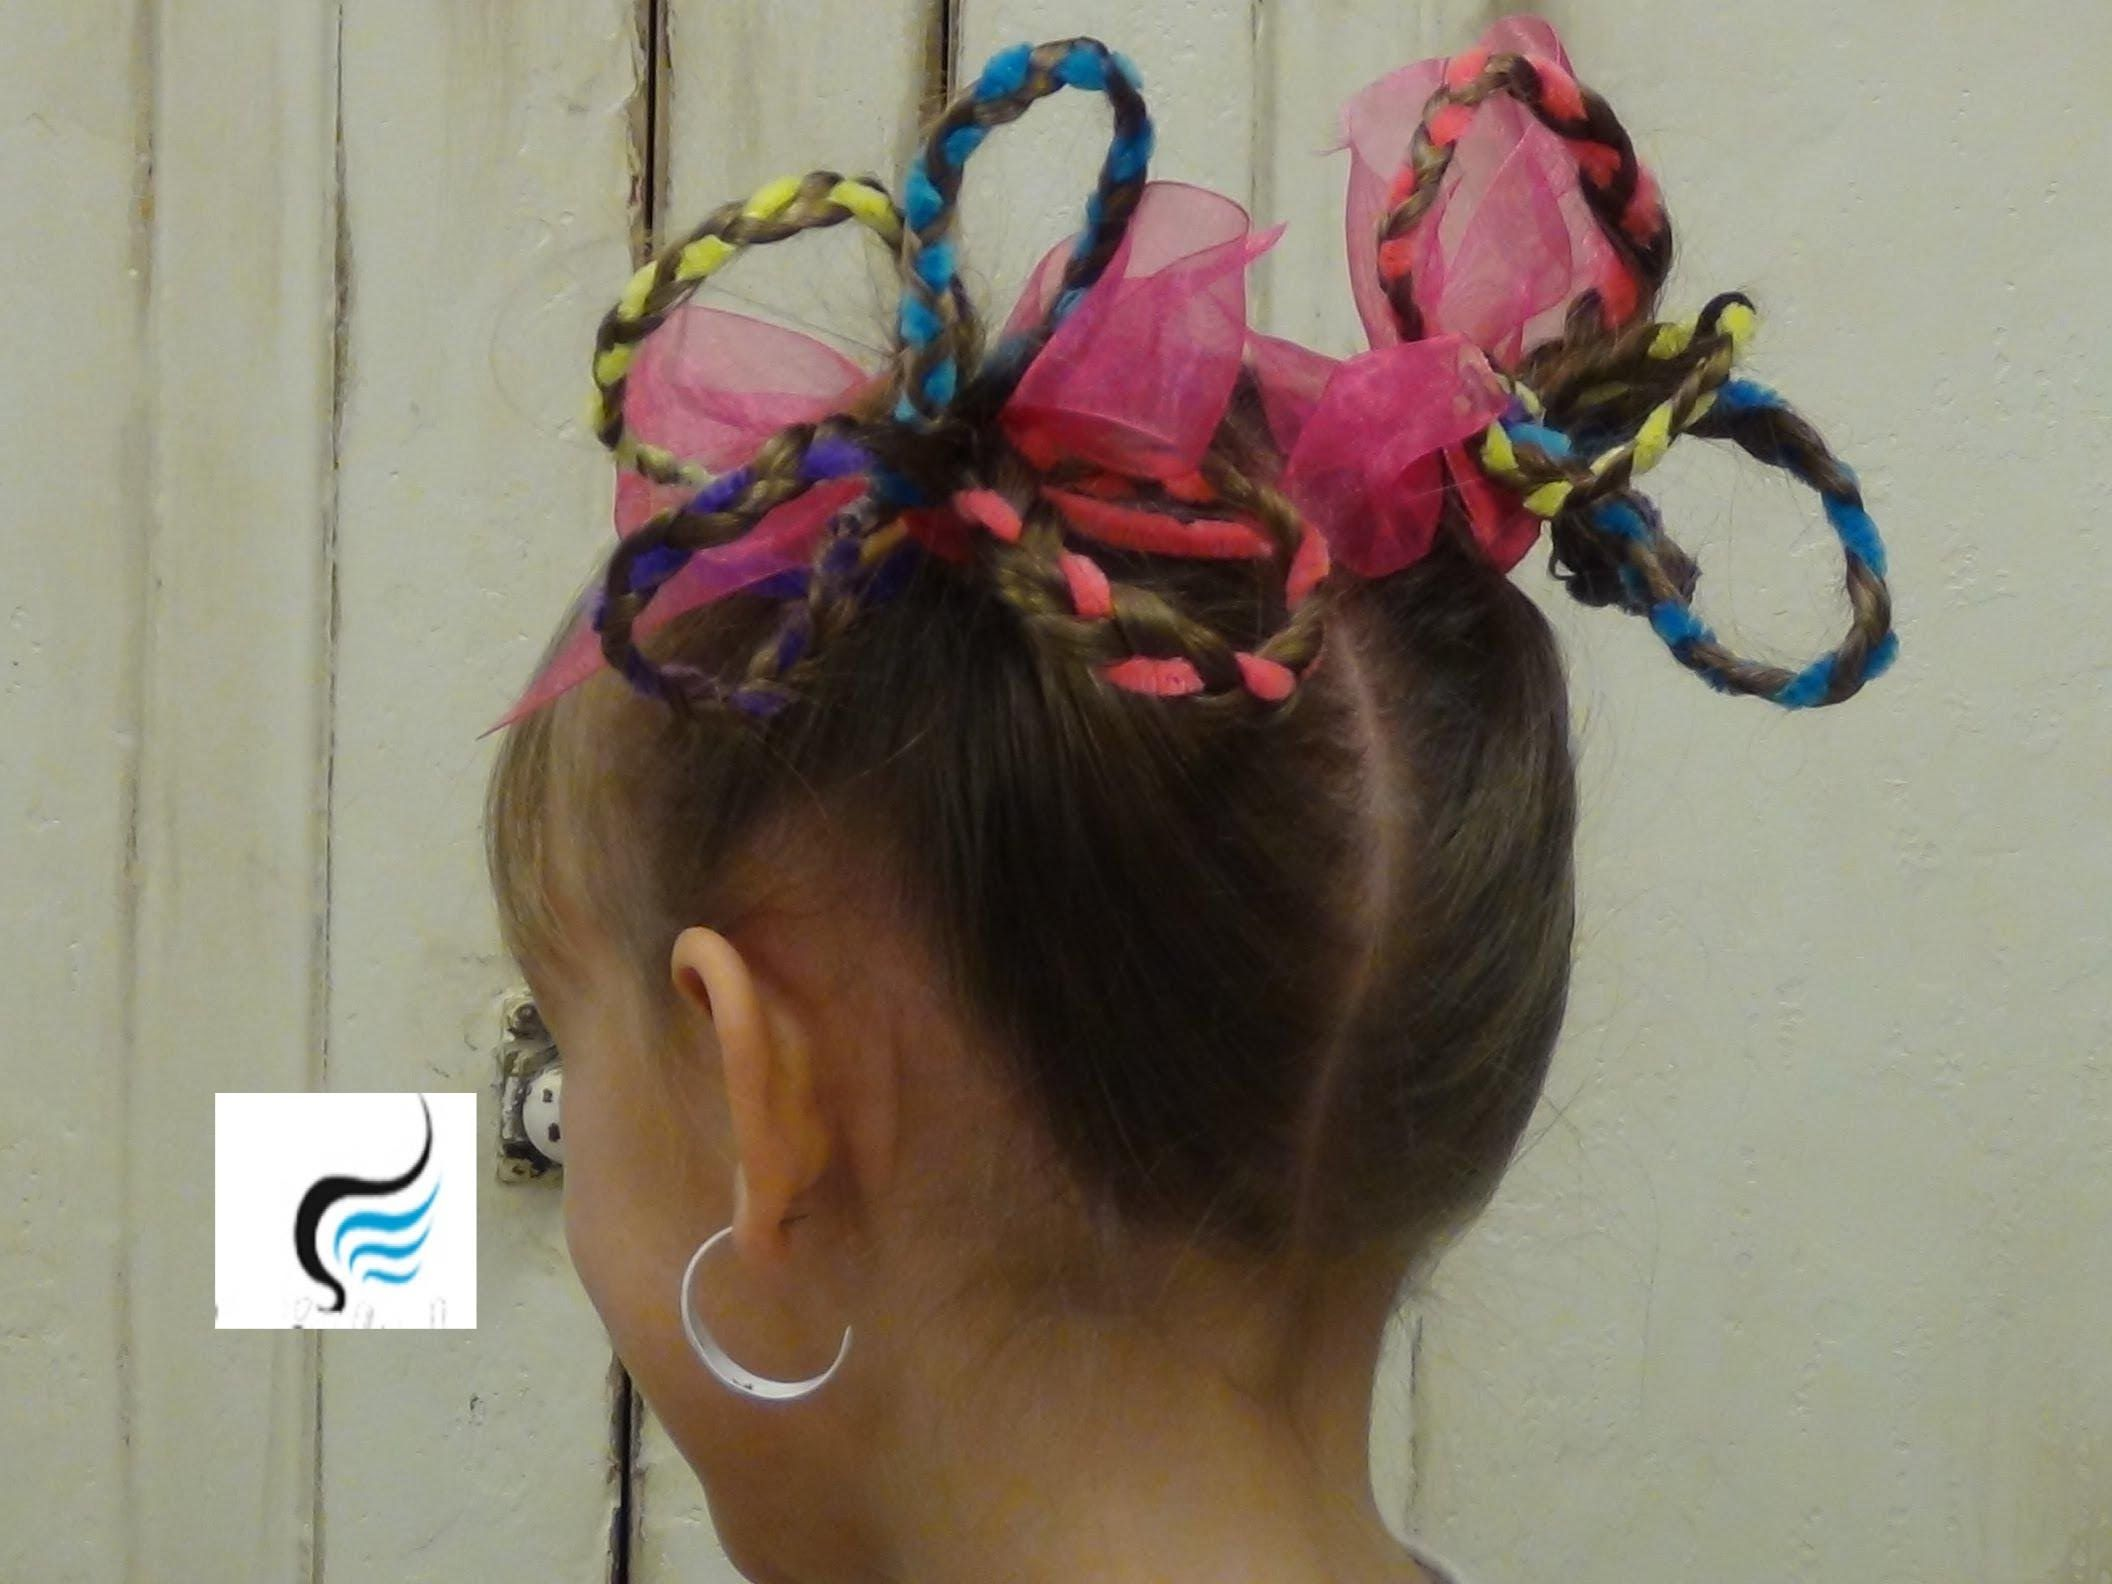 169 best crazy hair day images on pinterest | crazy hair days